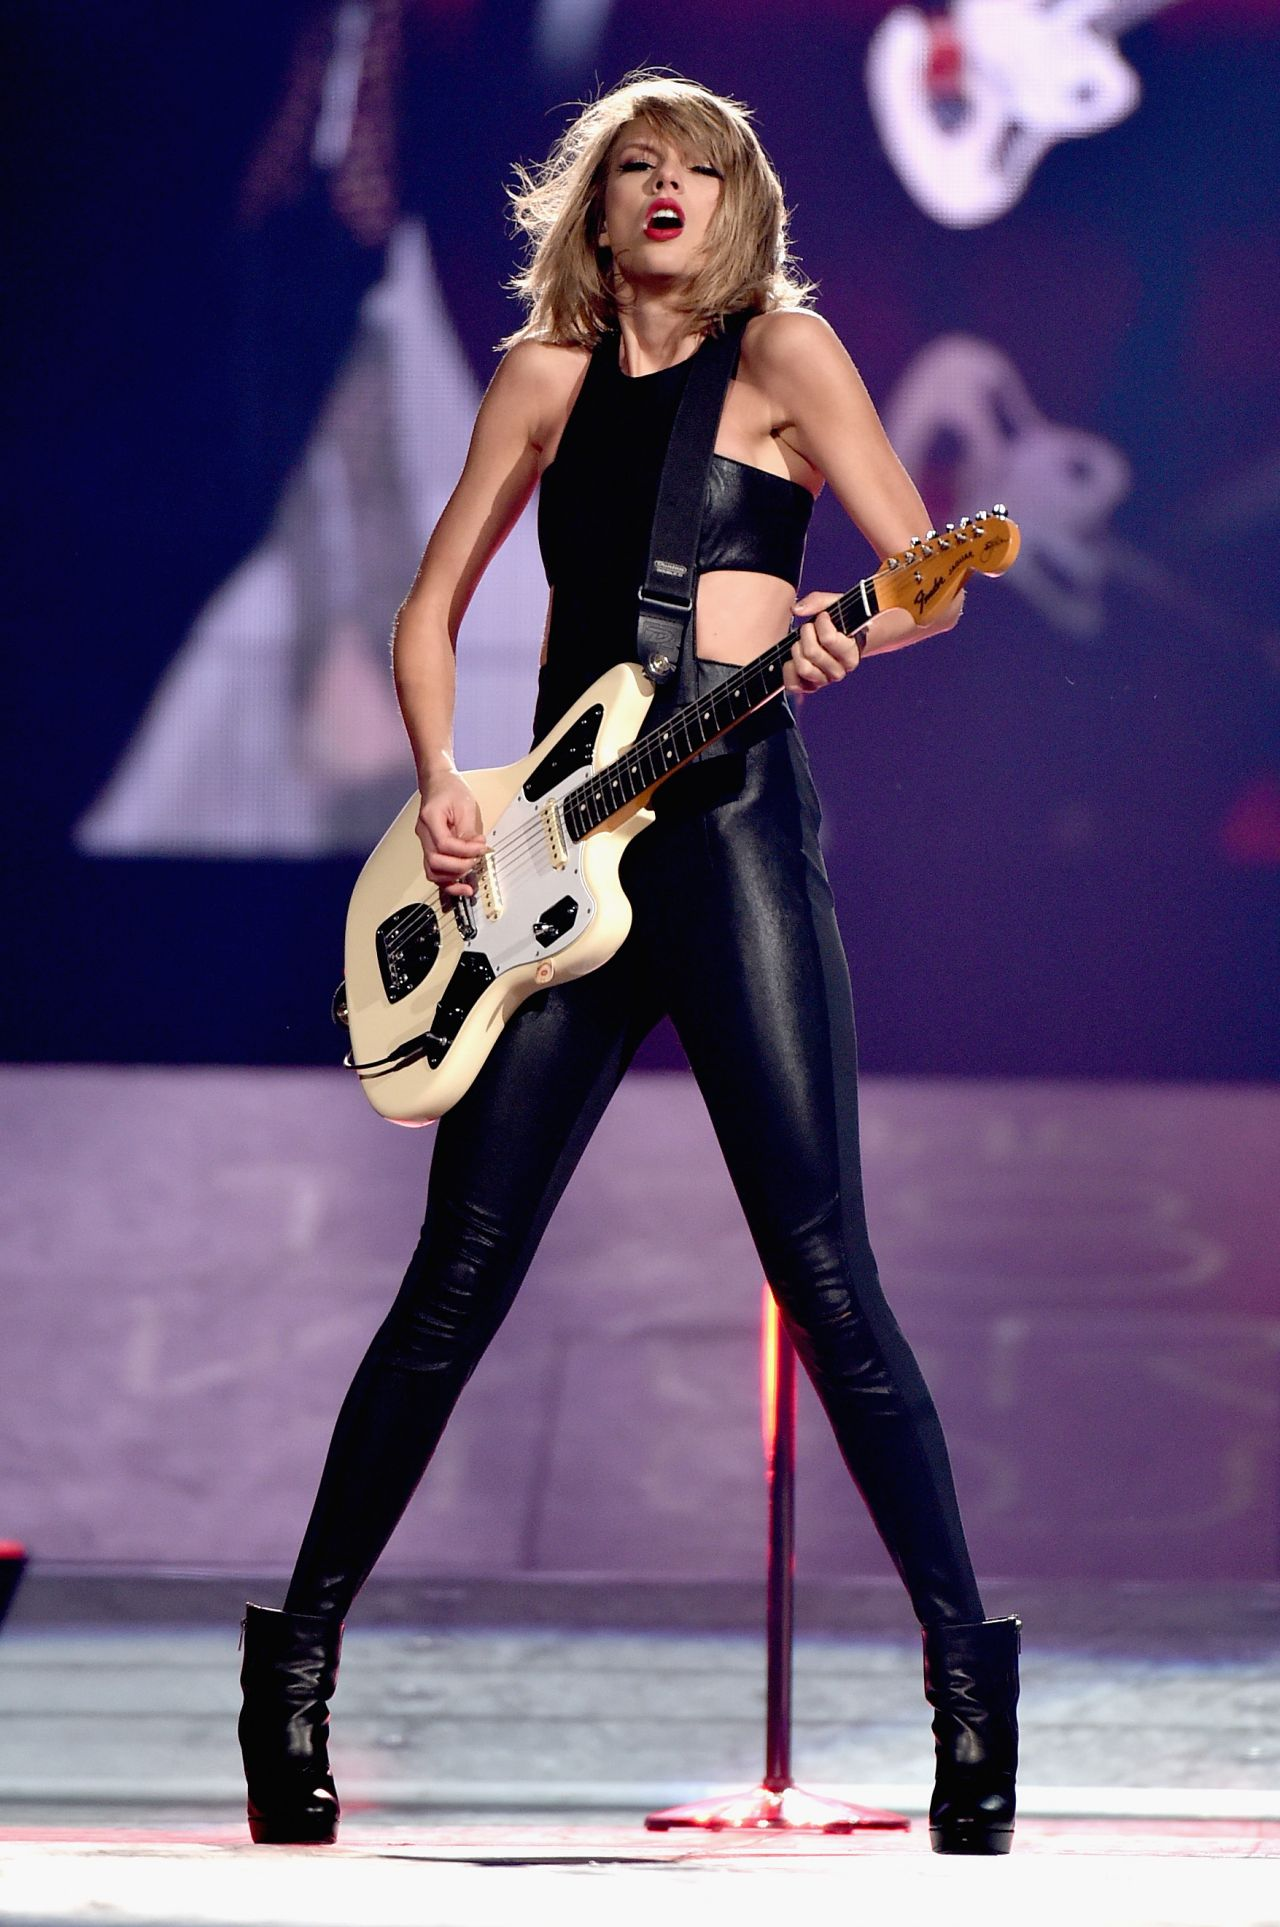 taylor-swift-the-1989-world-tour-at-bridgestone-arena-in-nashville_2